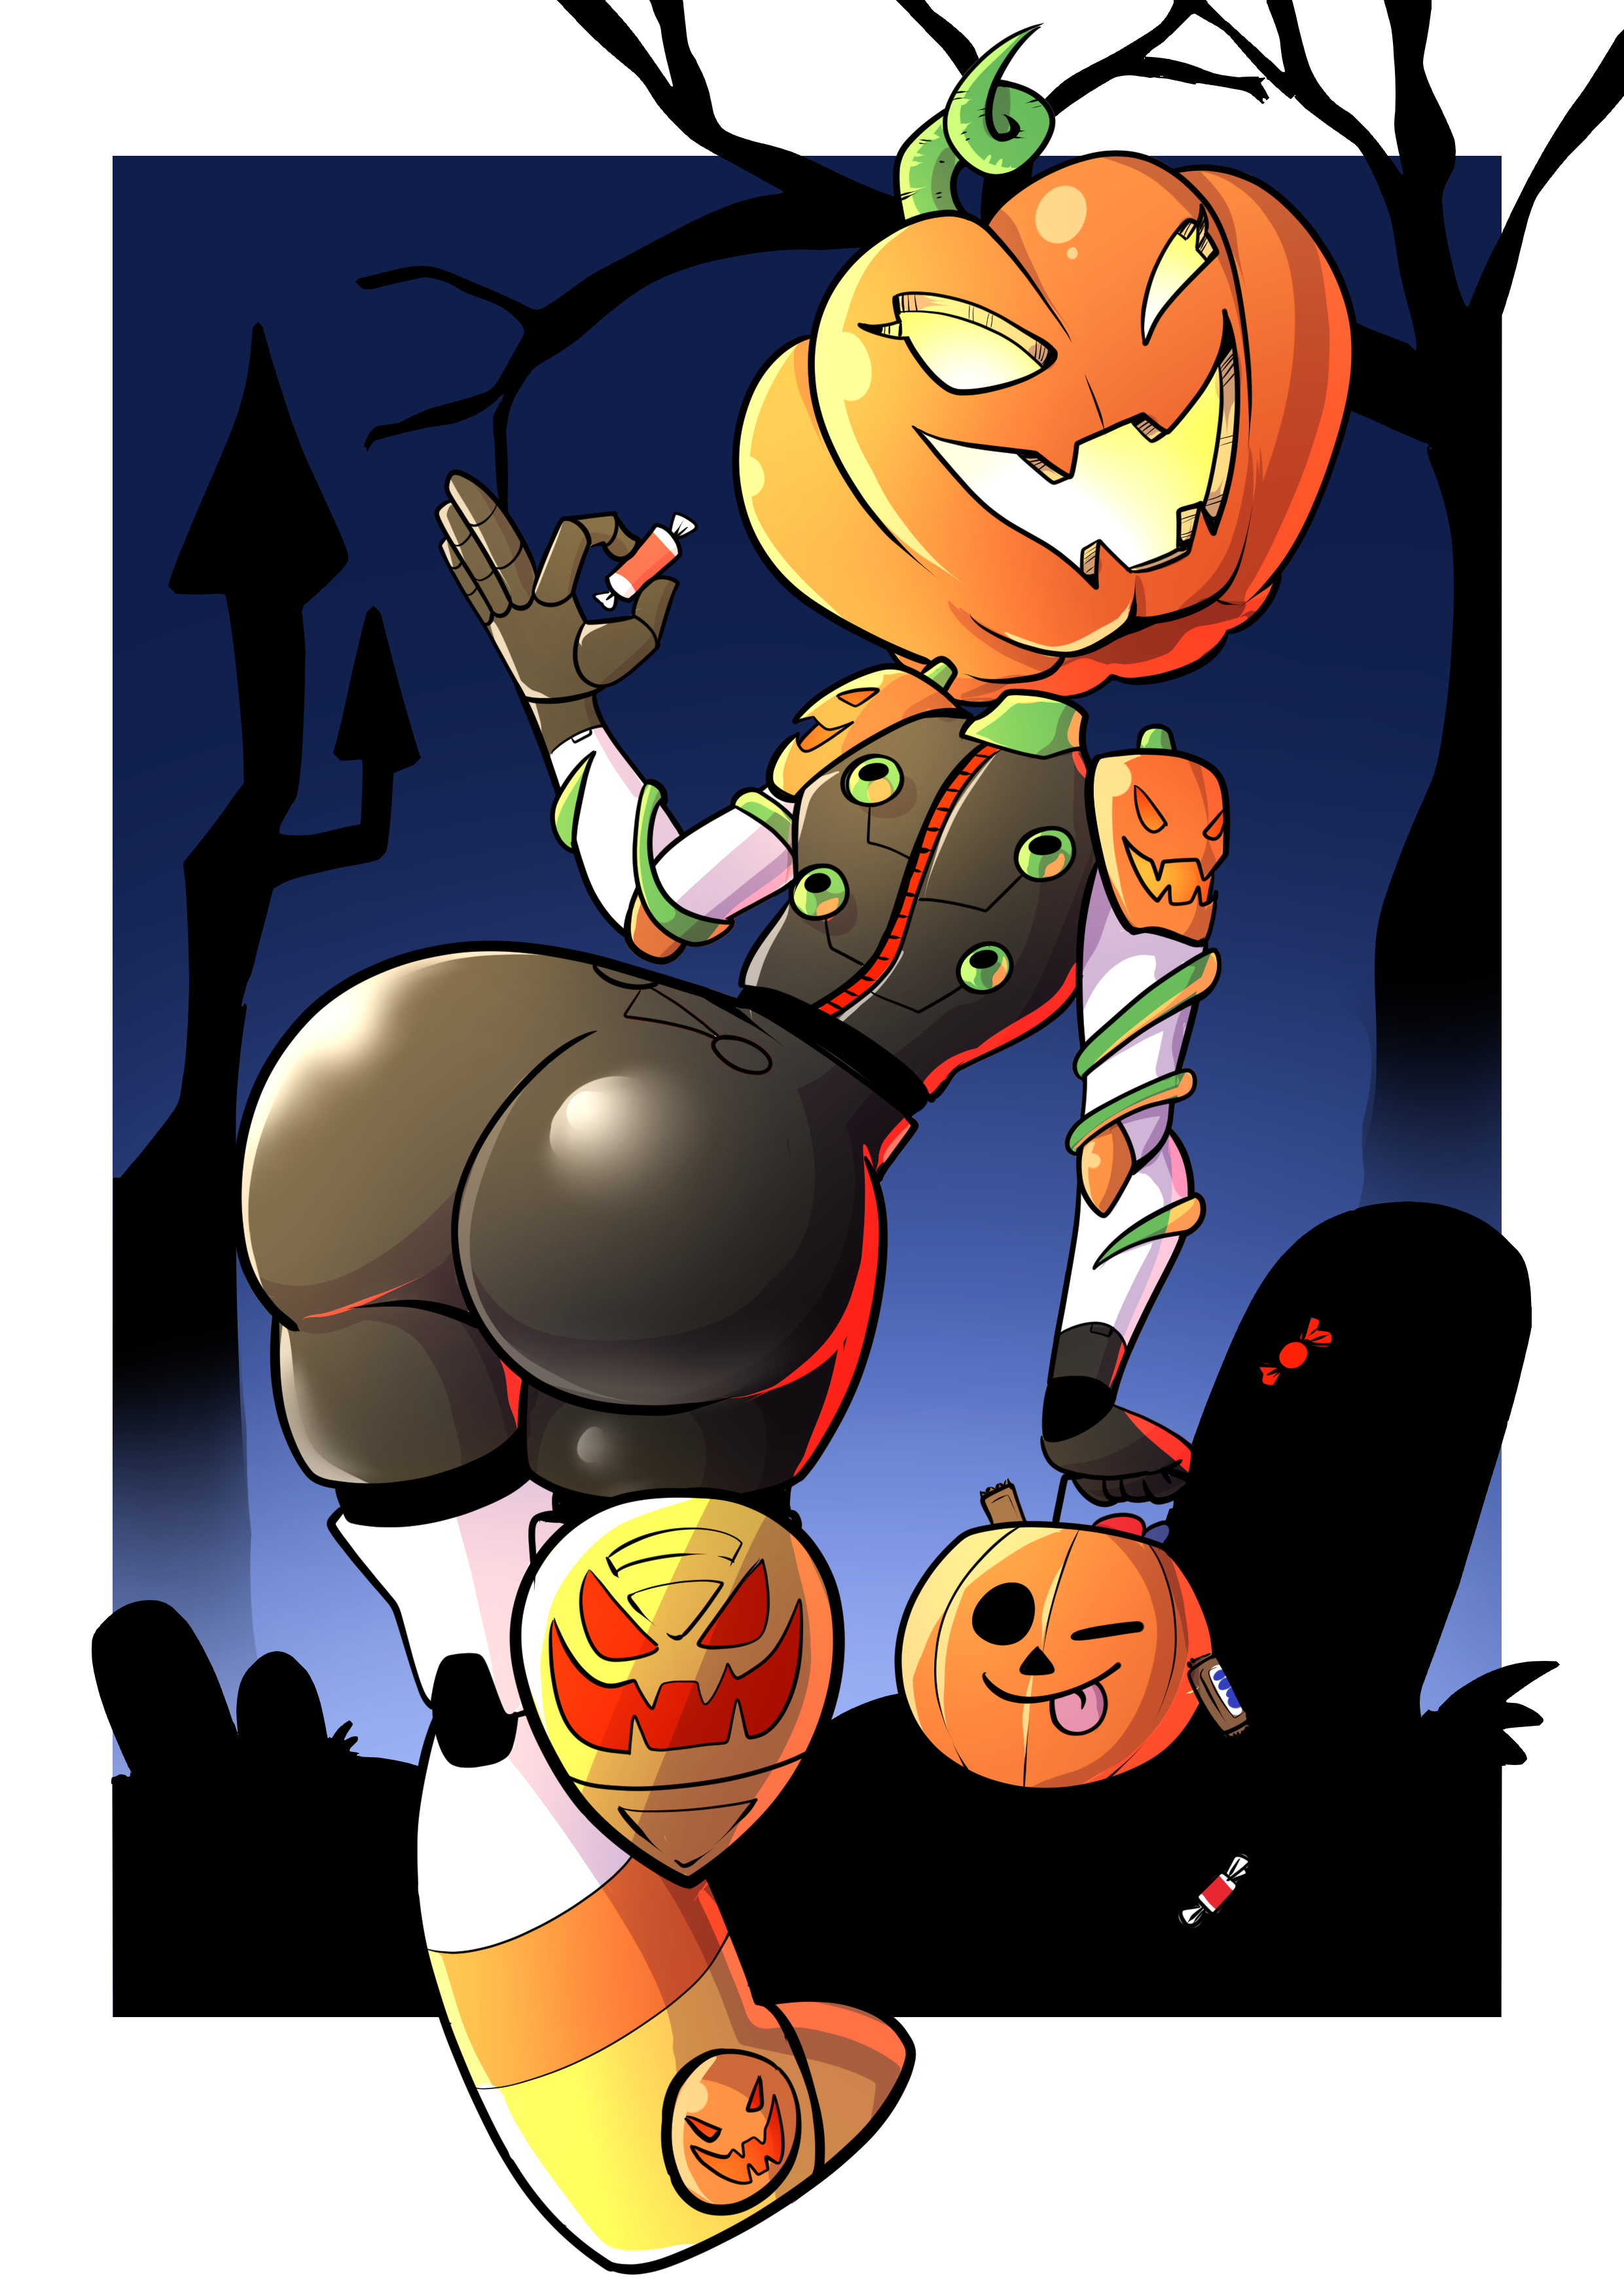 e621 2017 big_butt butt butt_pose candy captainanaugi fan_character female floating_head food fruit graveyard halloween hi_res holidays humanoid looking_at_viewer monster not_furry one_eye_closed pumpkin solo wink